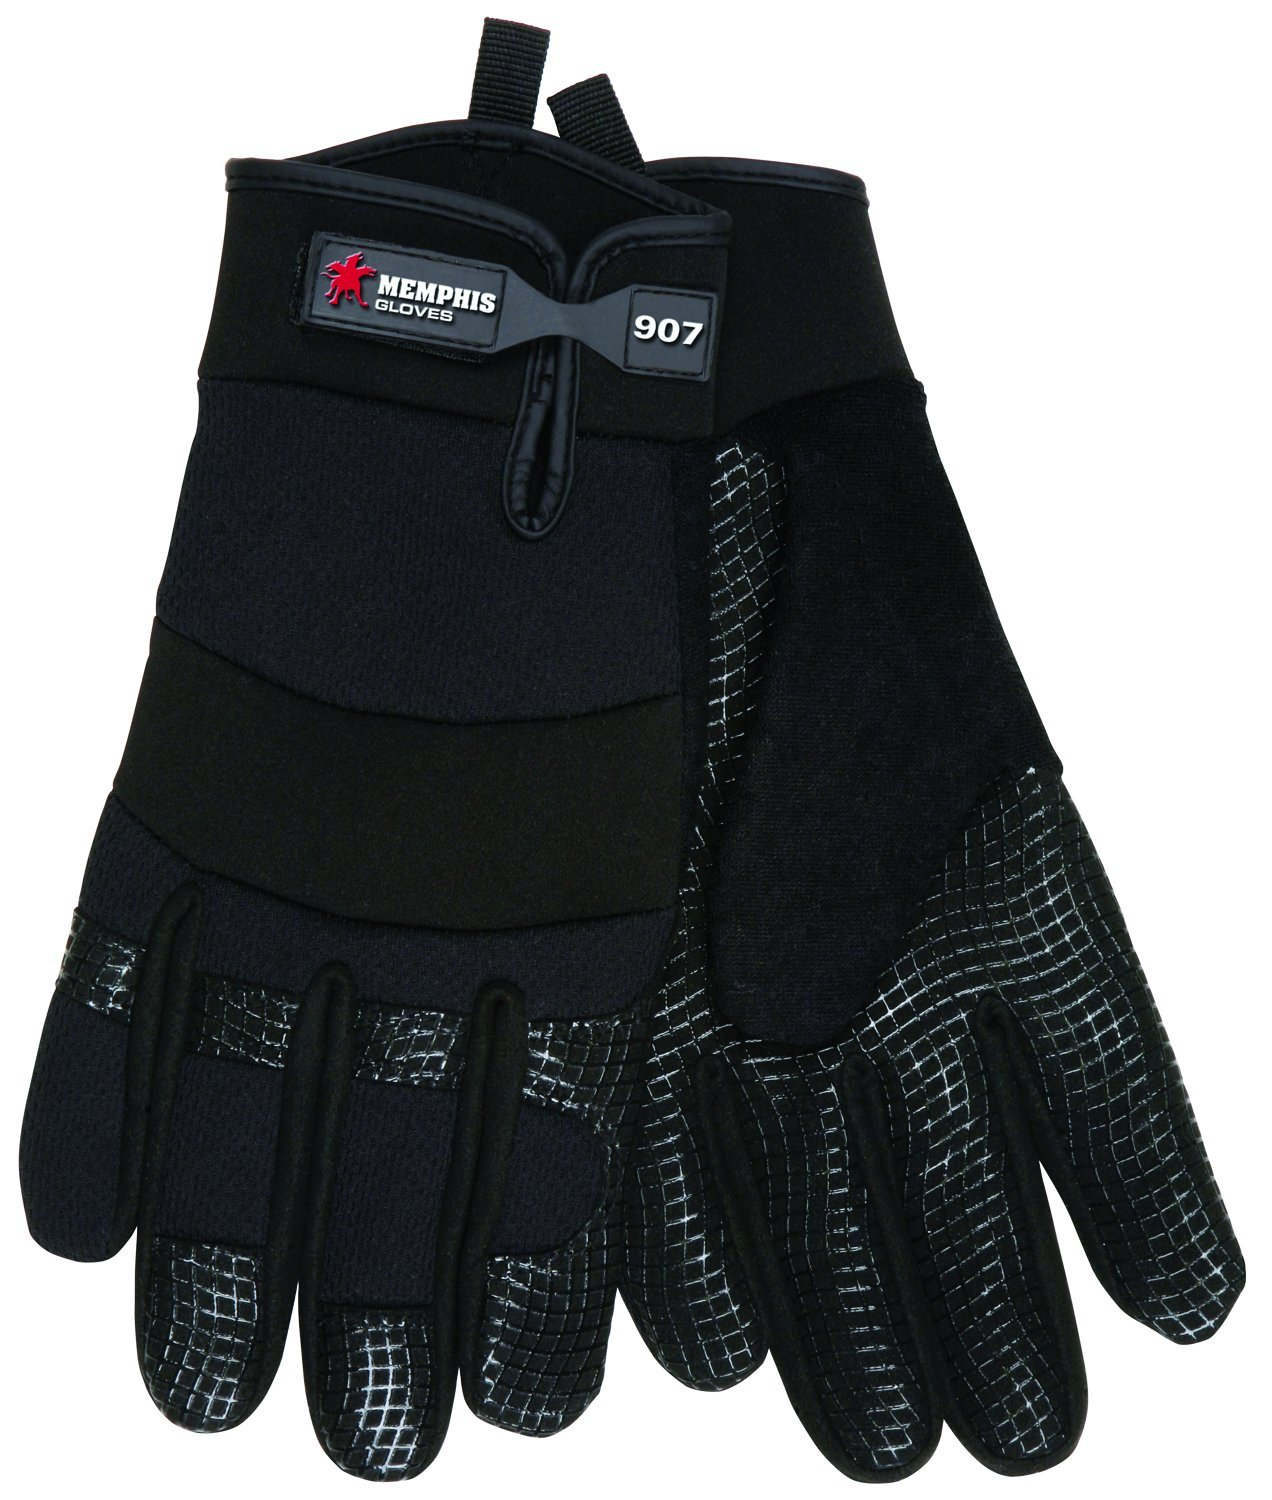 MCR Safety 907L Memphis Synthetic Palm Multi-Task Gloves with Adjustable Wrist Closure, Black, Large, 1-Pair